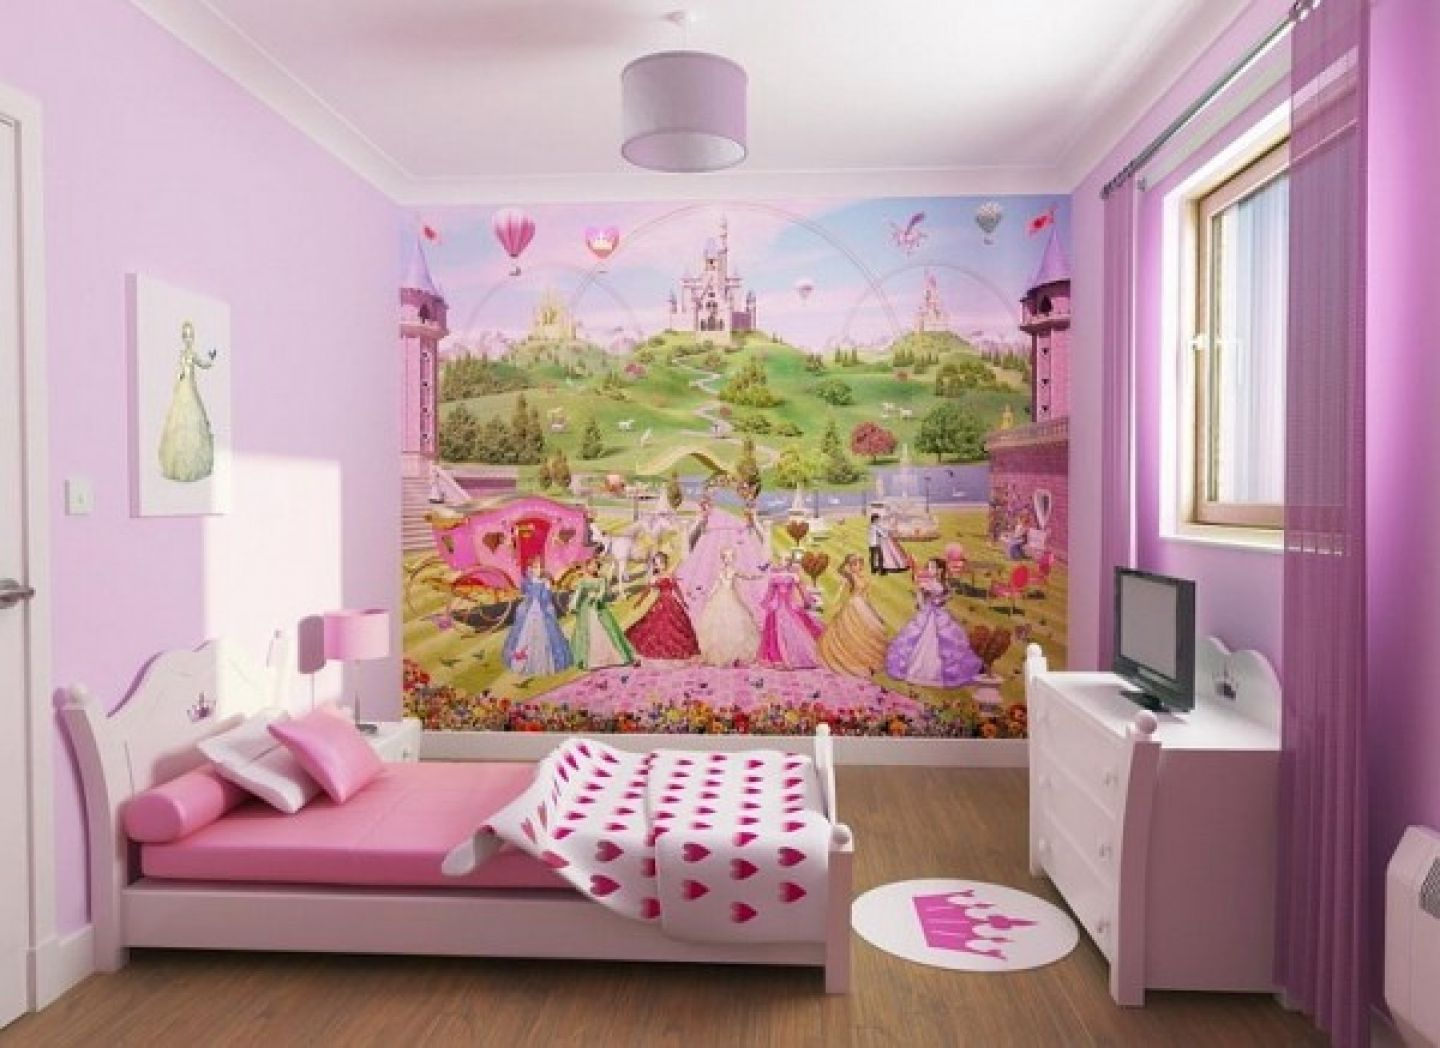 Girls\' Bedroom Style | Bedrooms, Small bedroom decorating and Room